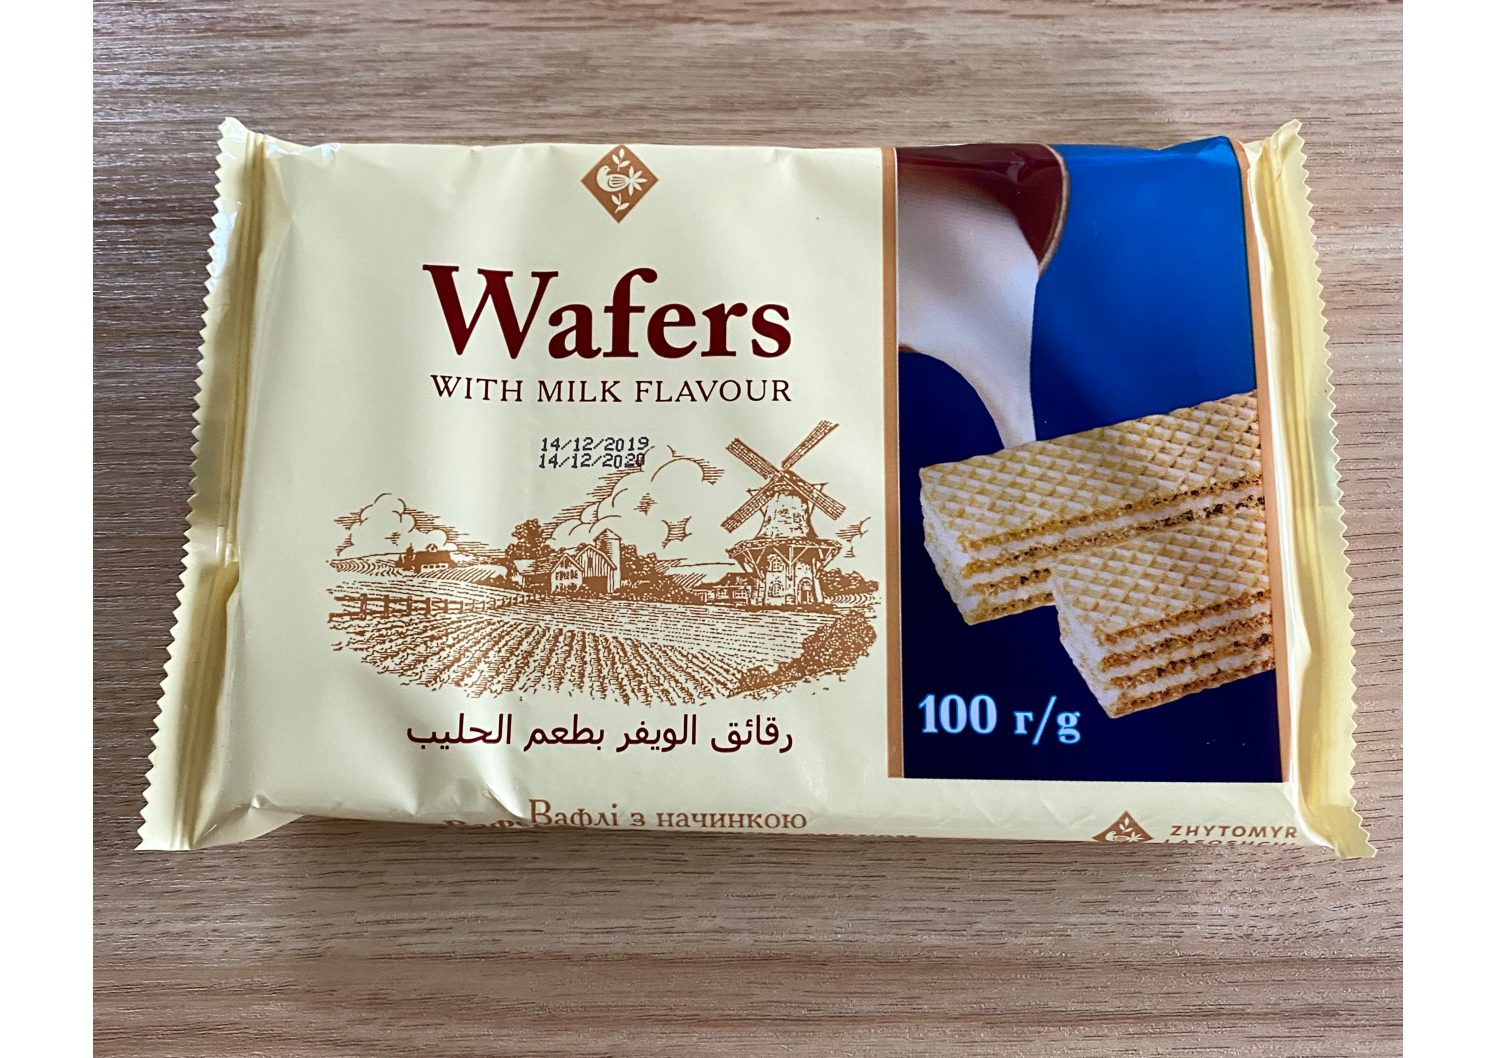 Wafers with Milk Flavour 100g